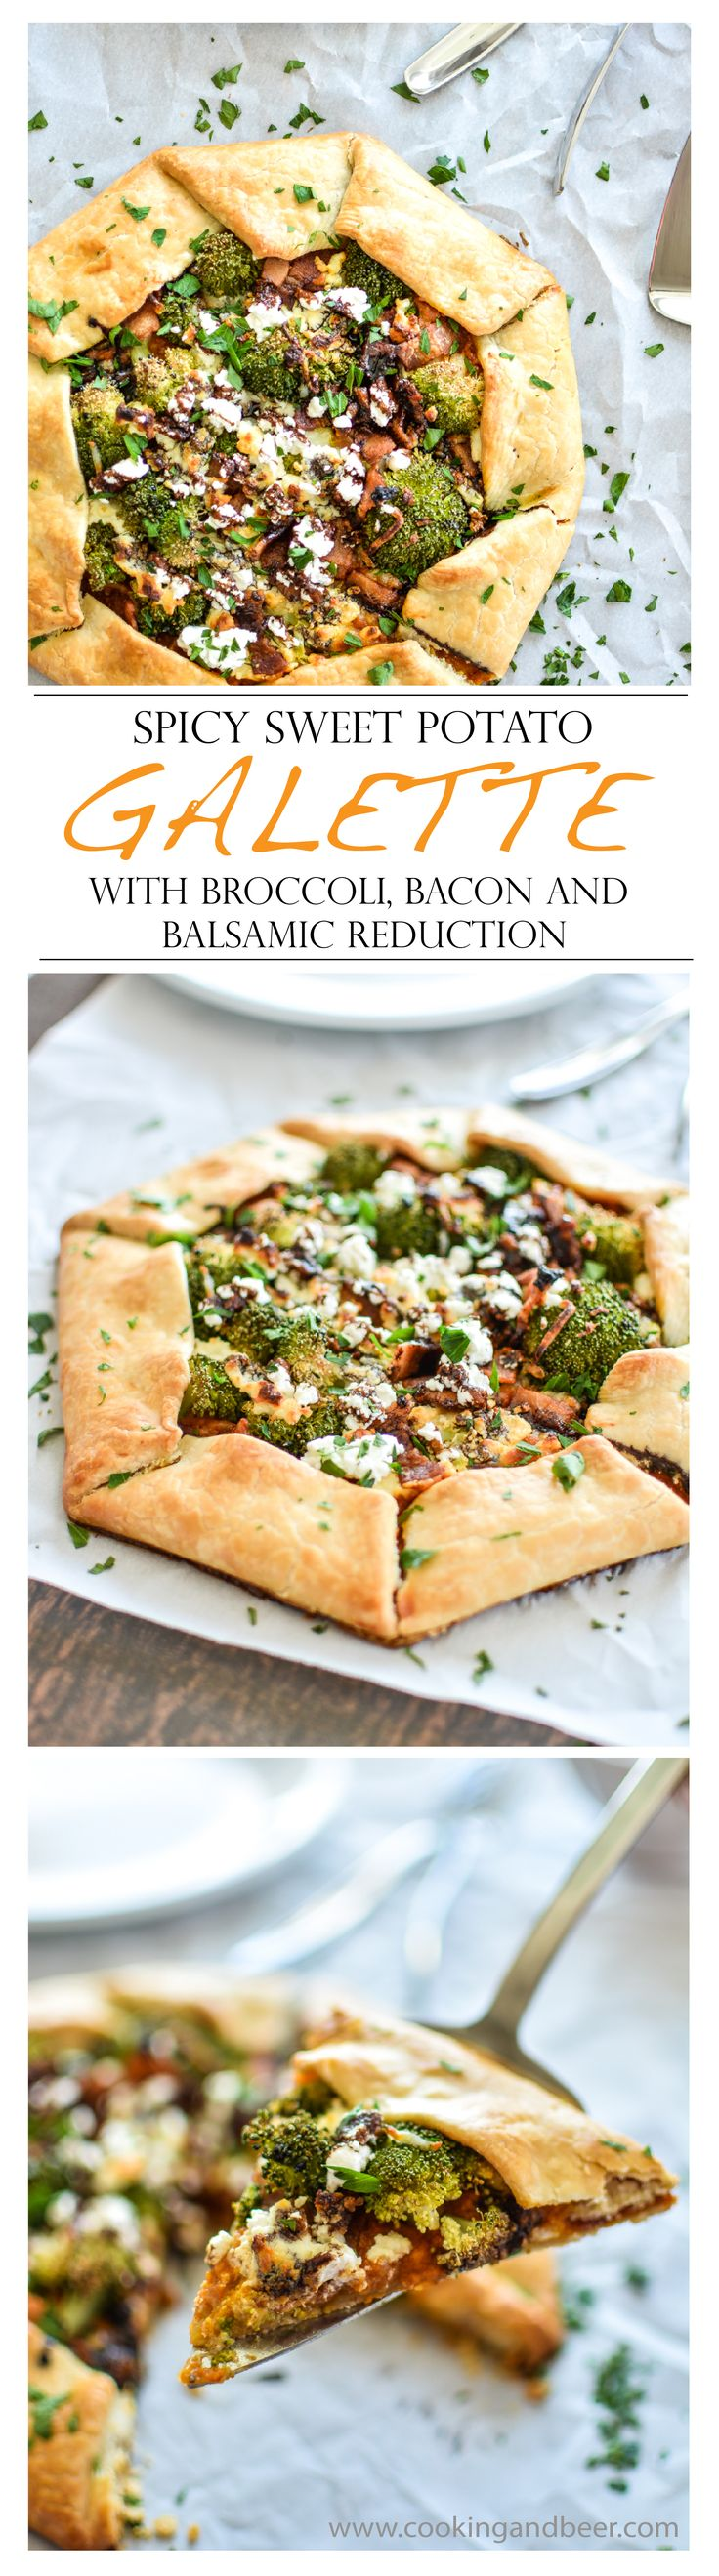 Spicy Sweet Potato Galette with Broccoli, Bacon and Balsamic Reduction | www.cookingandbeer.com | @jalanesulia